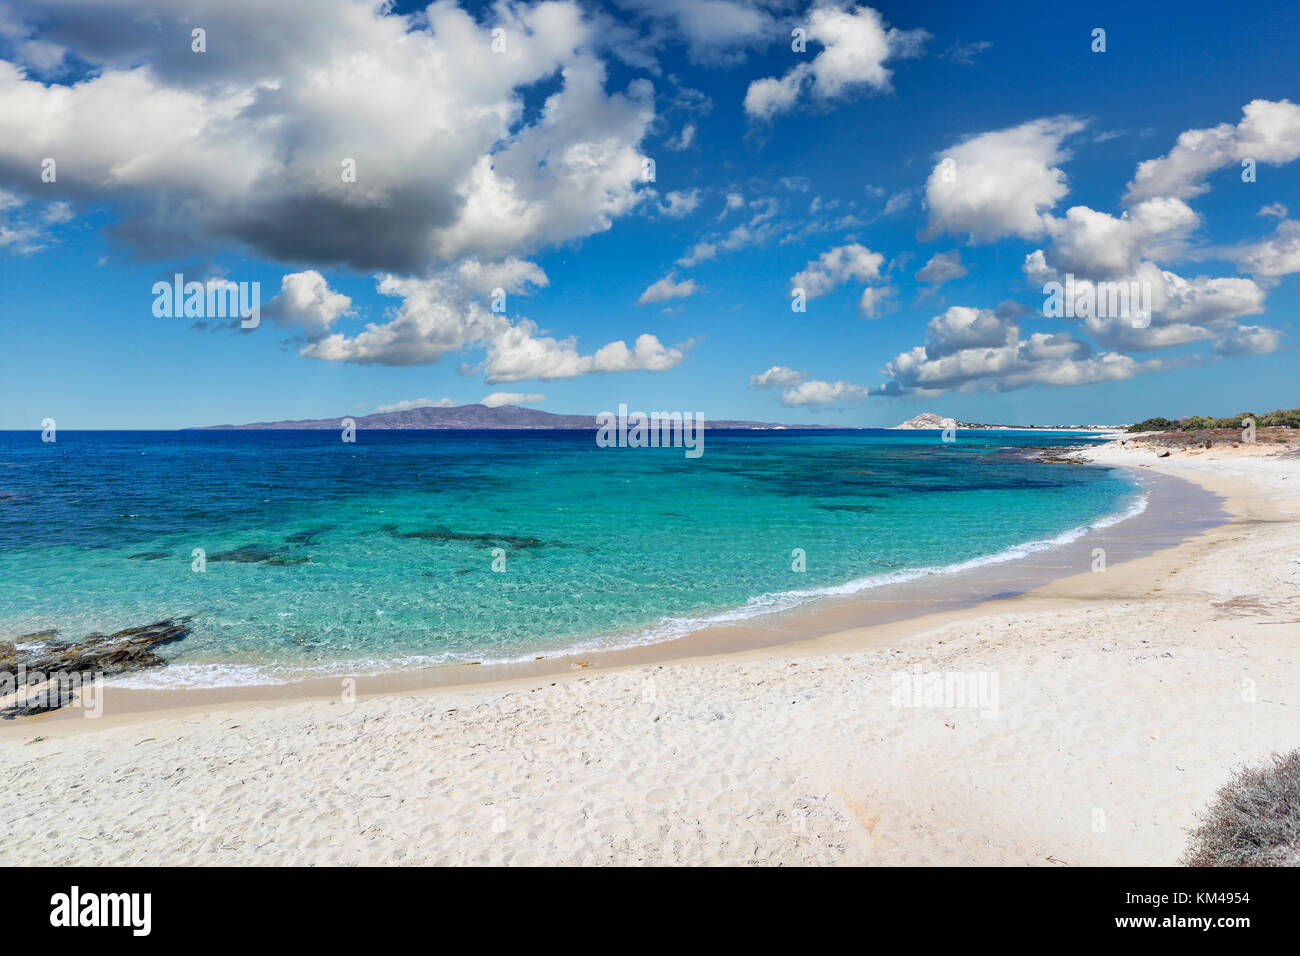 Kastraki beach of Naxos island in Cyclades, Greece - Stock Image